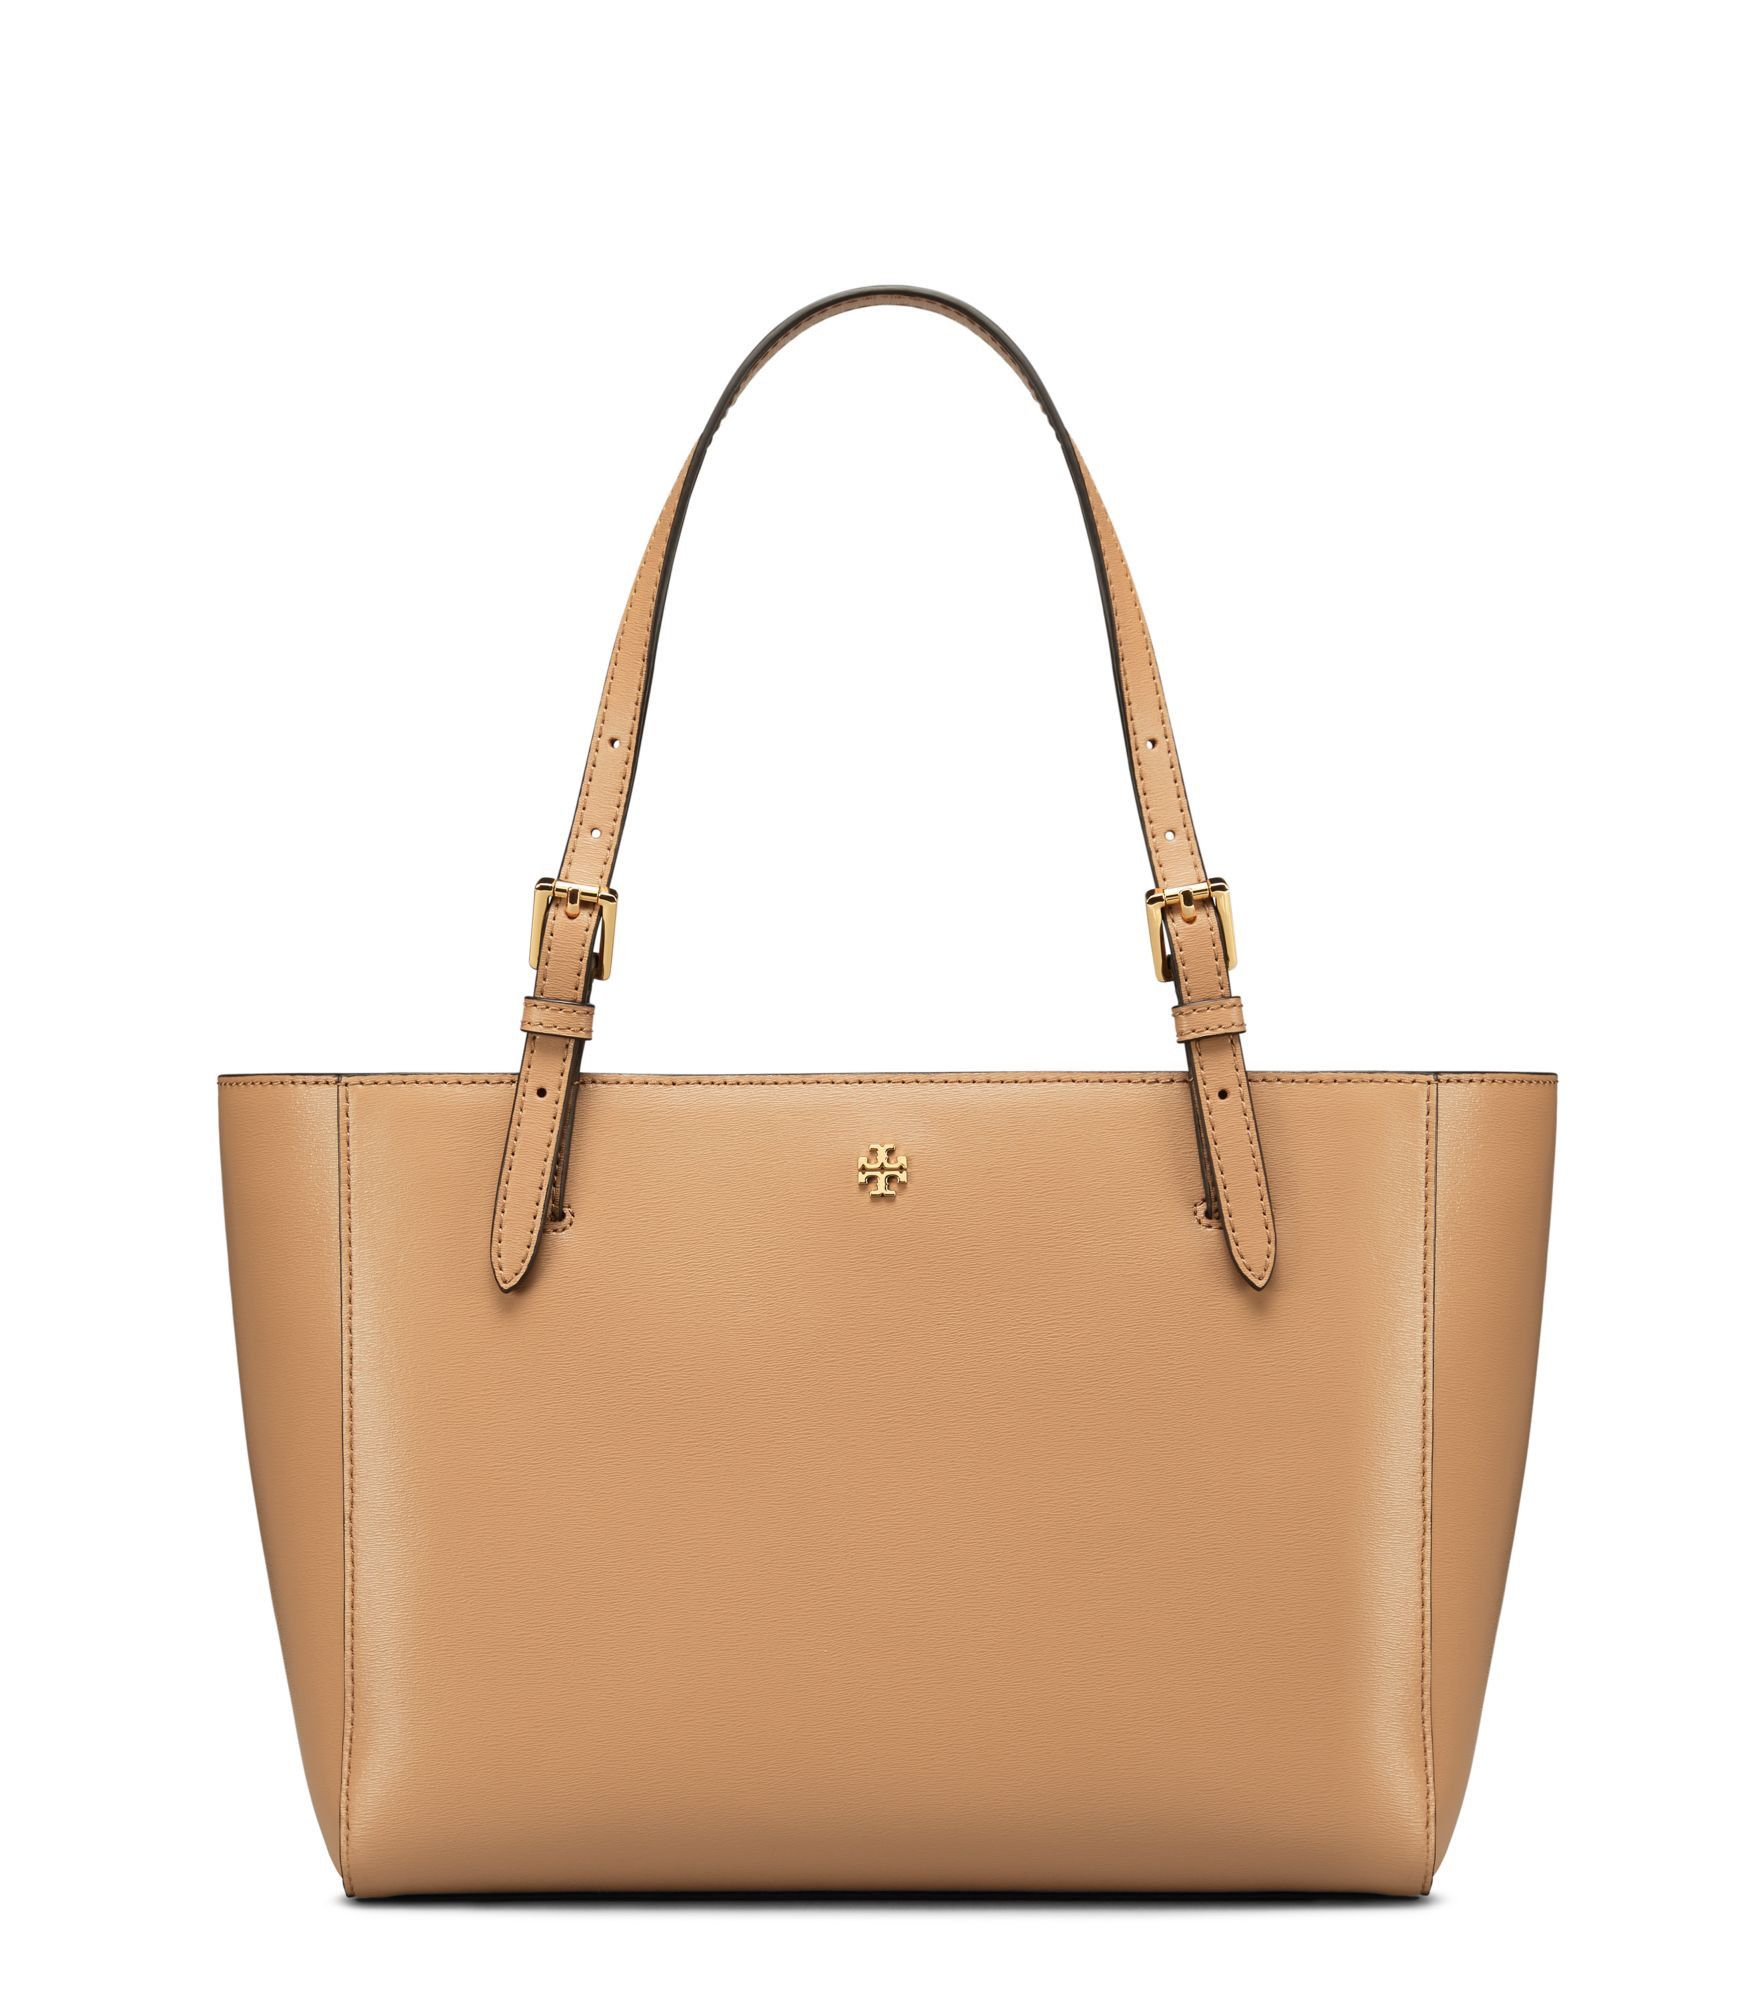 d2e70158f7bc TORY BURCH PARKER SMALL TRIPLE-COMPARTMENT TOTE.  toryburch  bags  shoulder  bags  hand bags  leather  tote